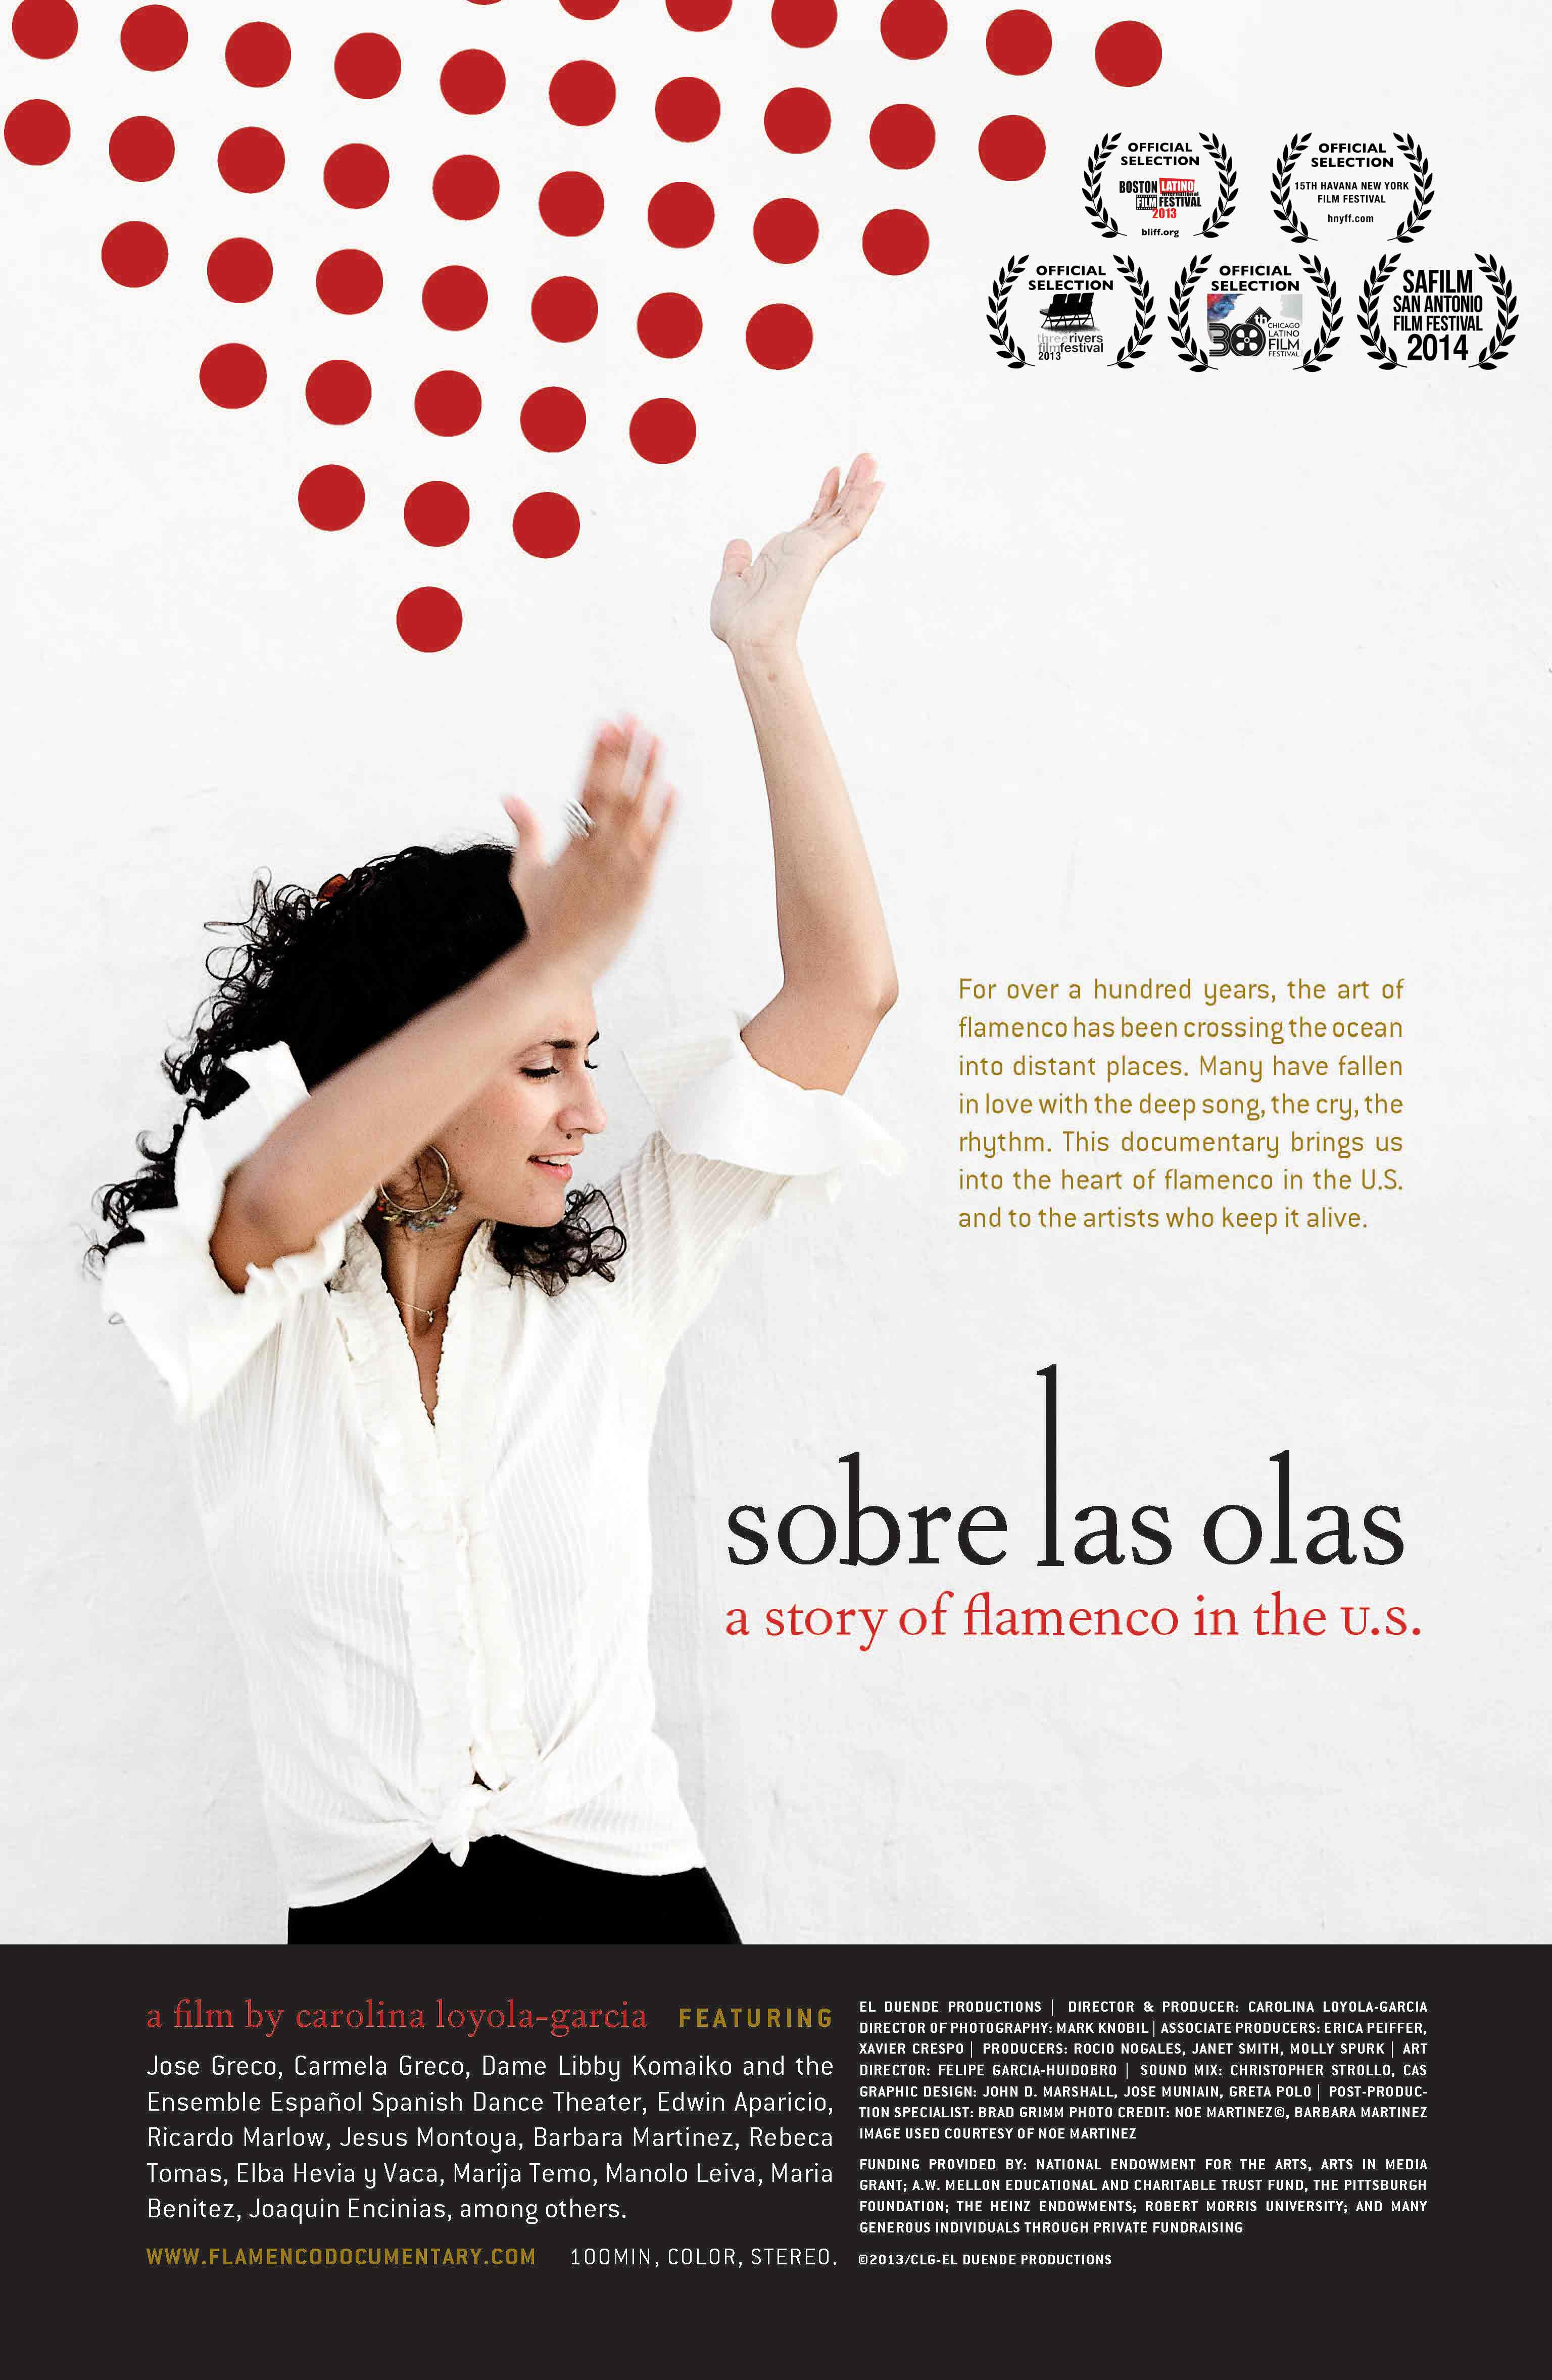 sobre las olas: a story of flamenco in the US